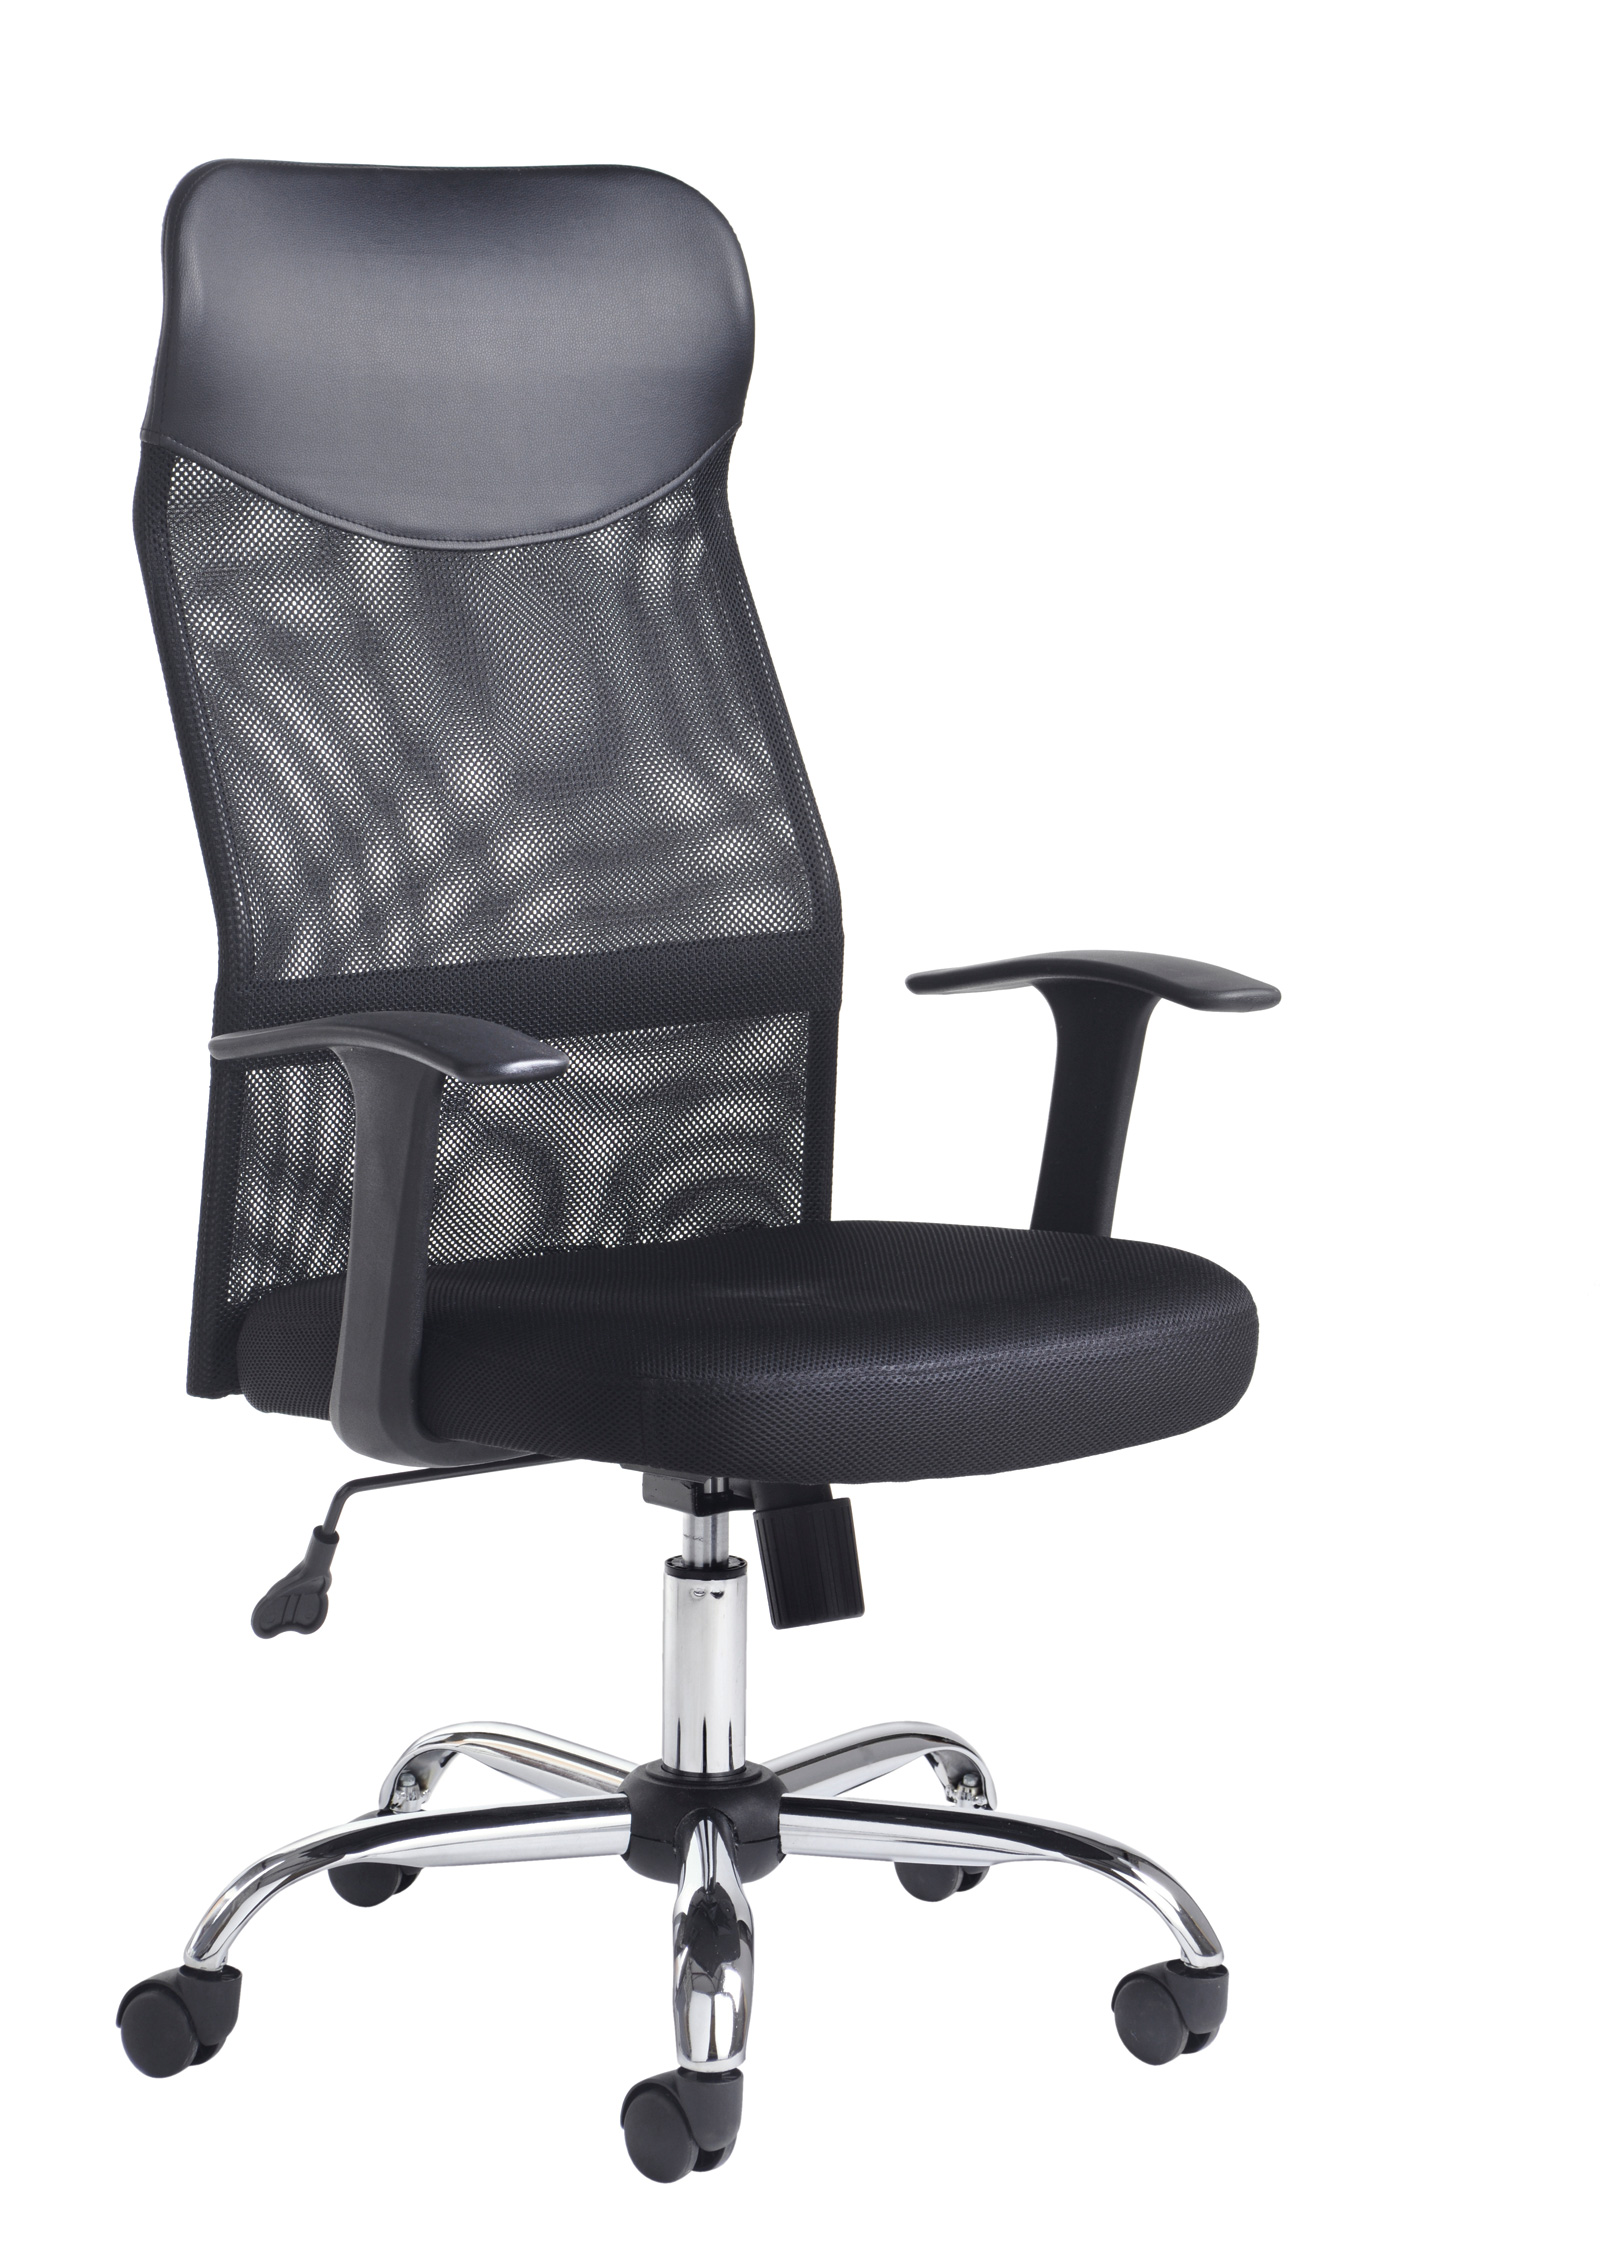 Aurora High back mesh chair with headrest, fixed arms, chrome base, black mesh back with upholstered seat